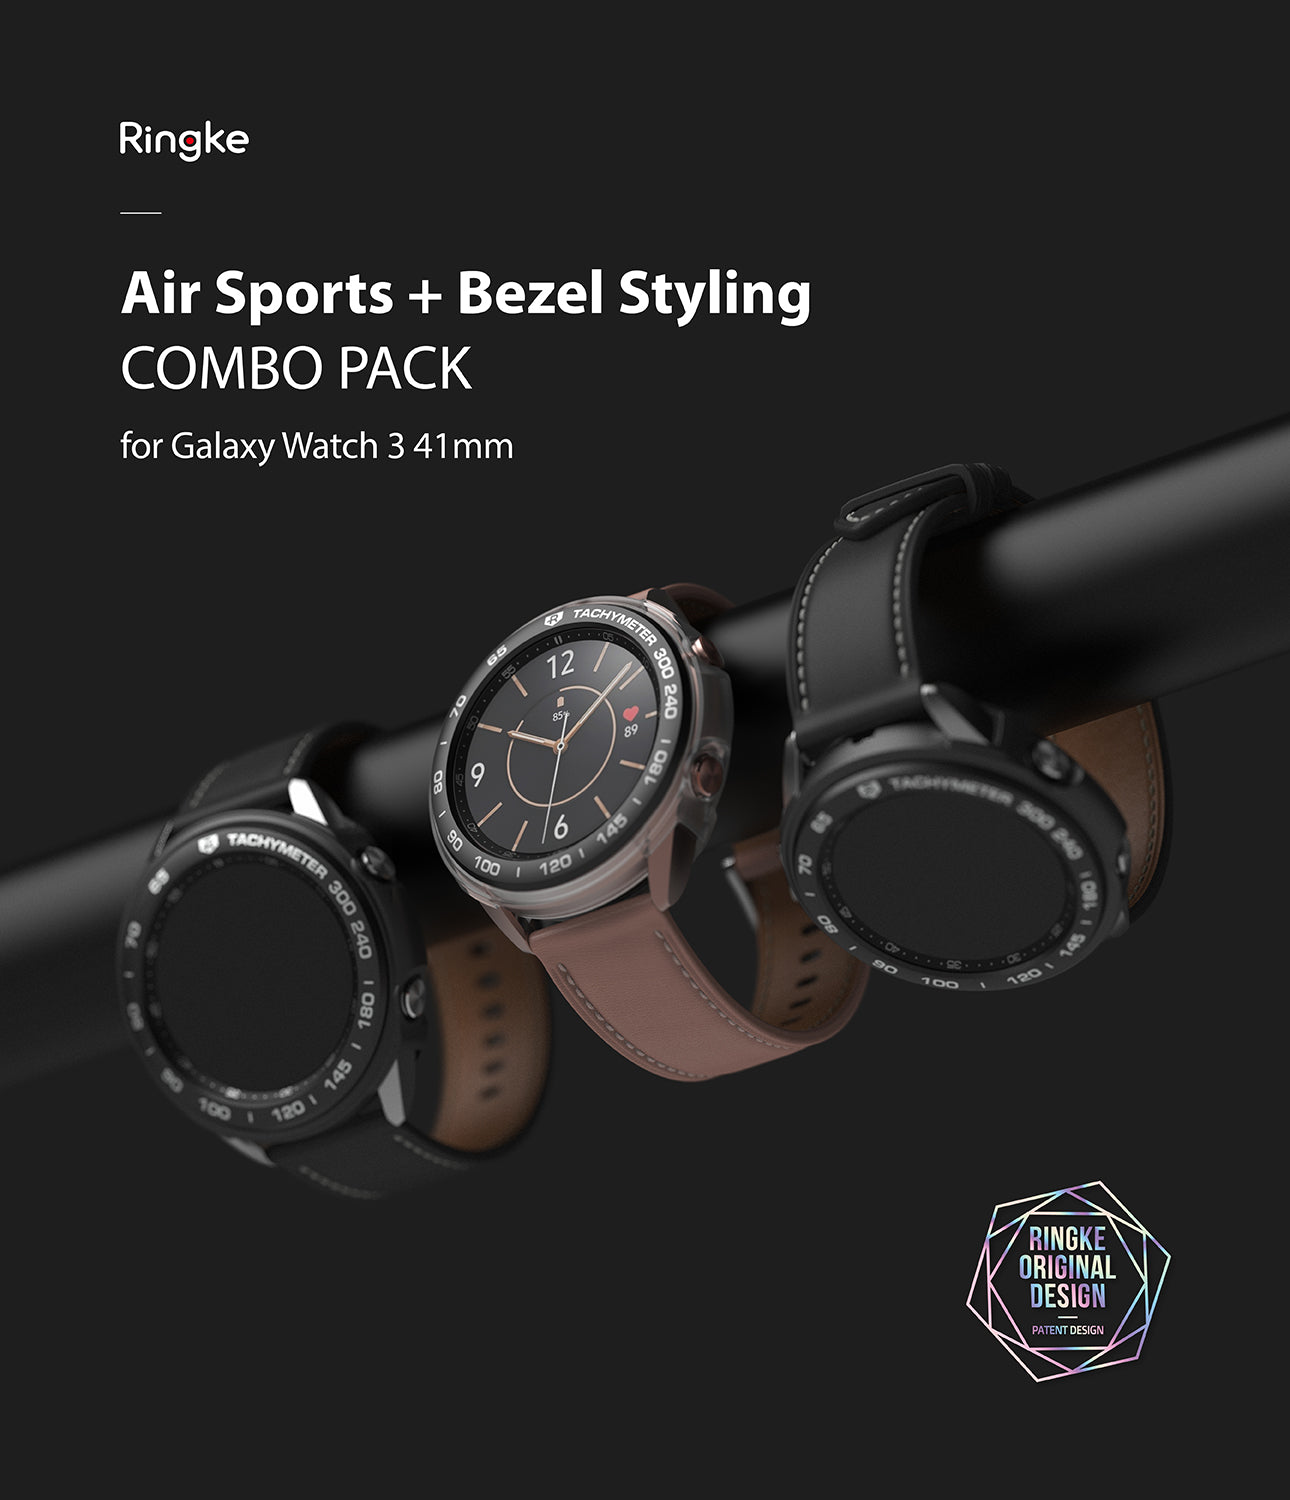 ringke air sports + bezel styling combo pack for samsung galaxy watch 3 41mm - black + 10